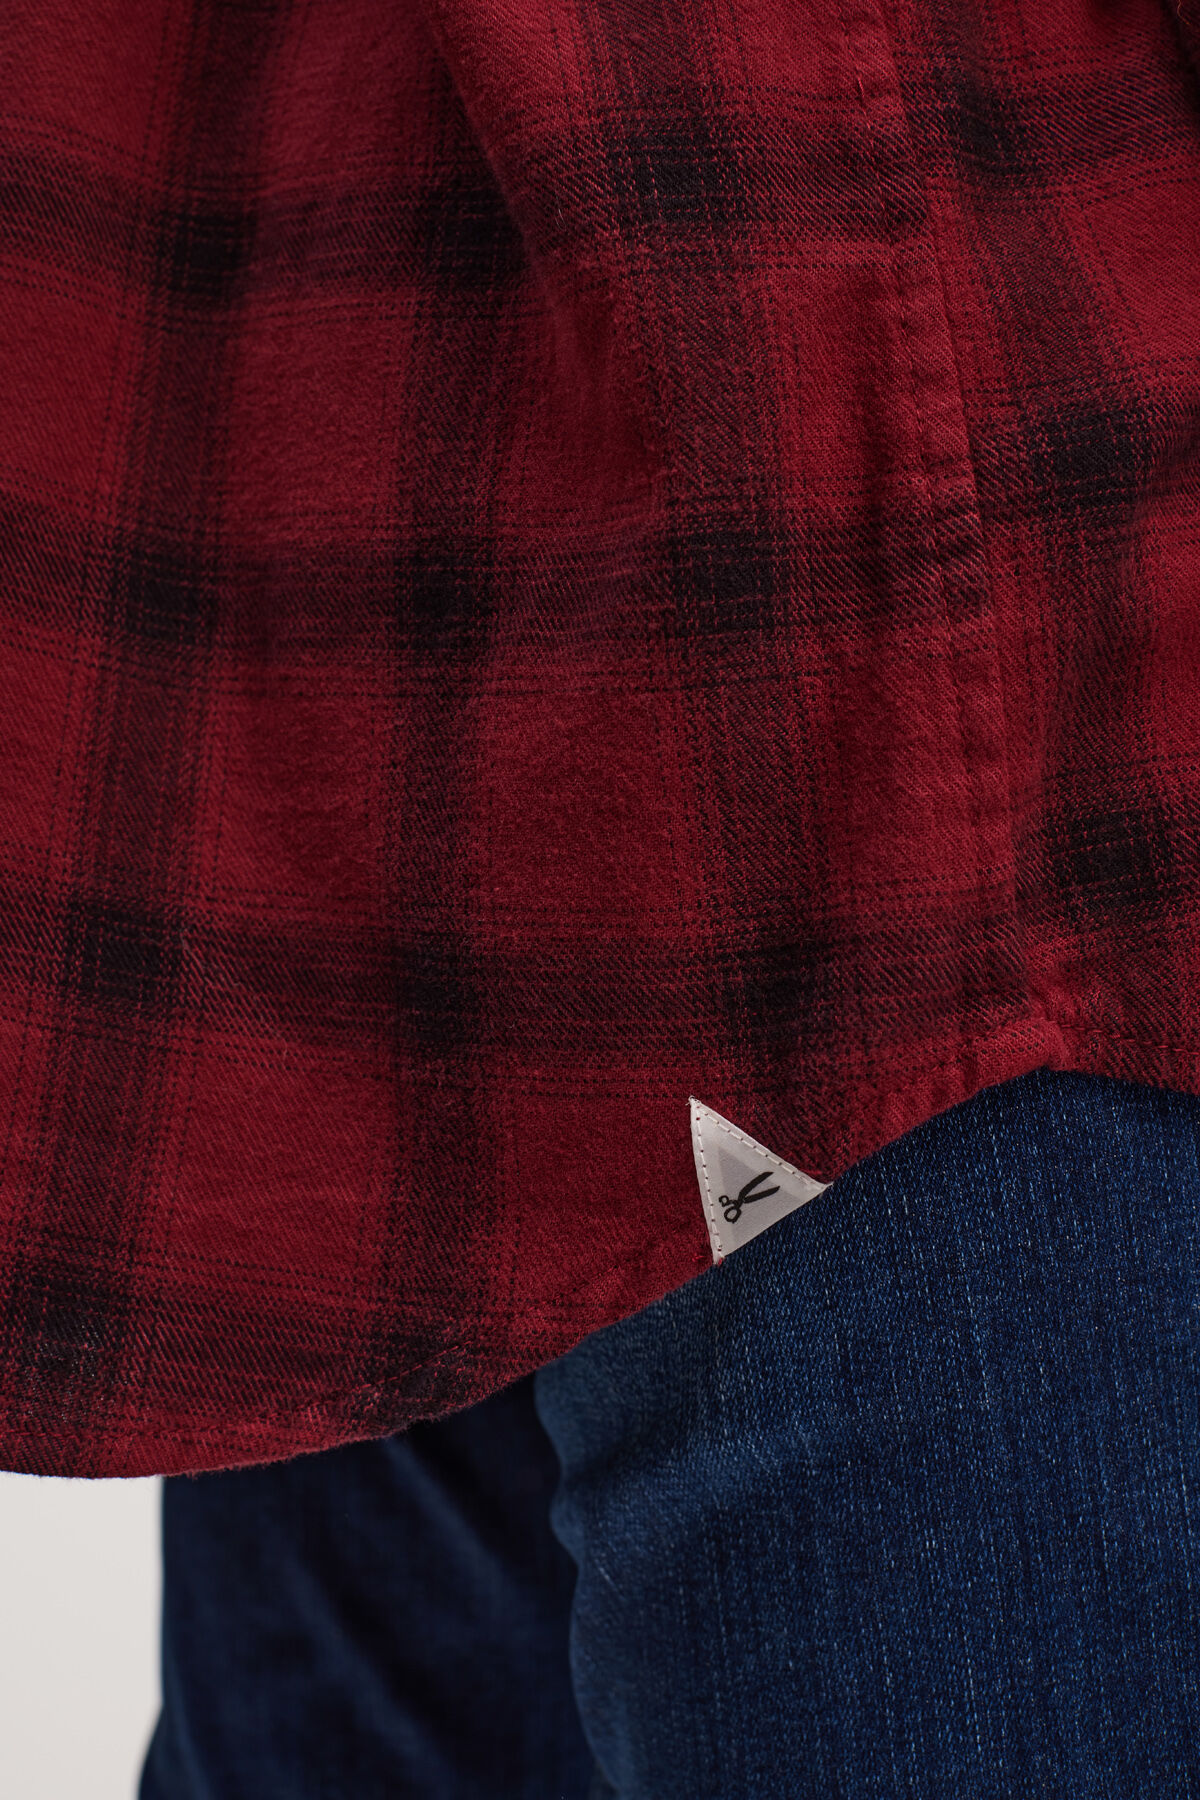 OLIVIA SHIRT Shadow Check Cotton - Oversized Fit